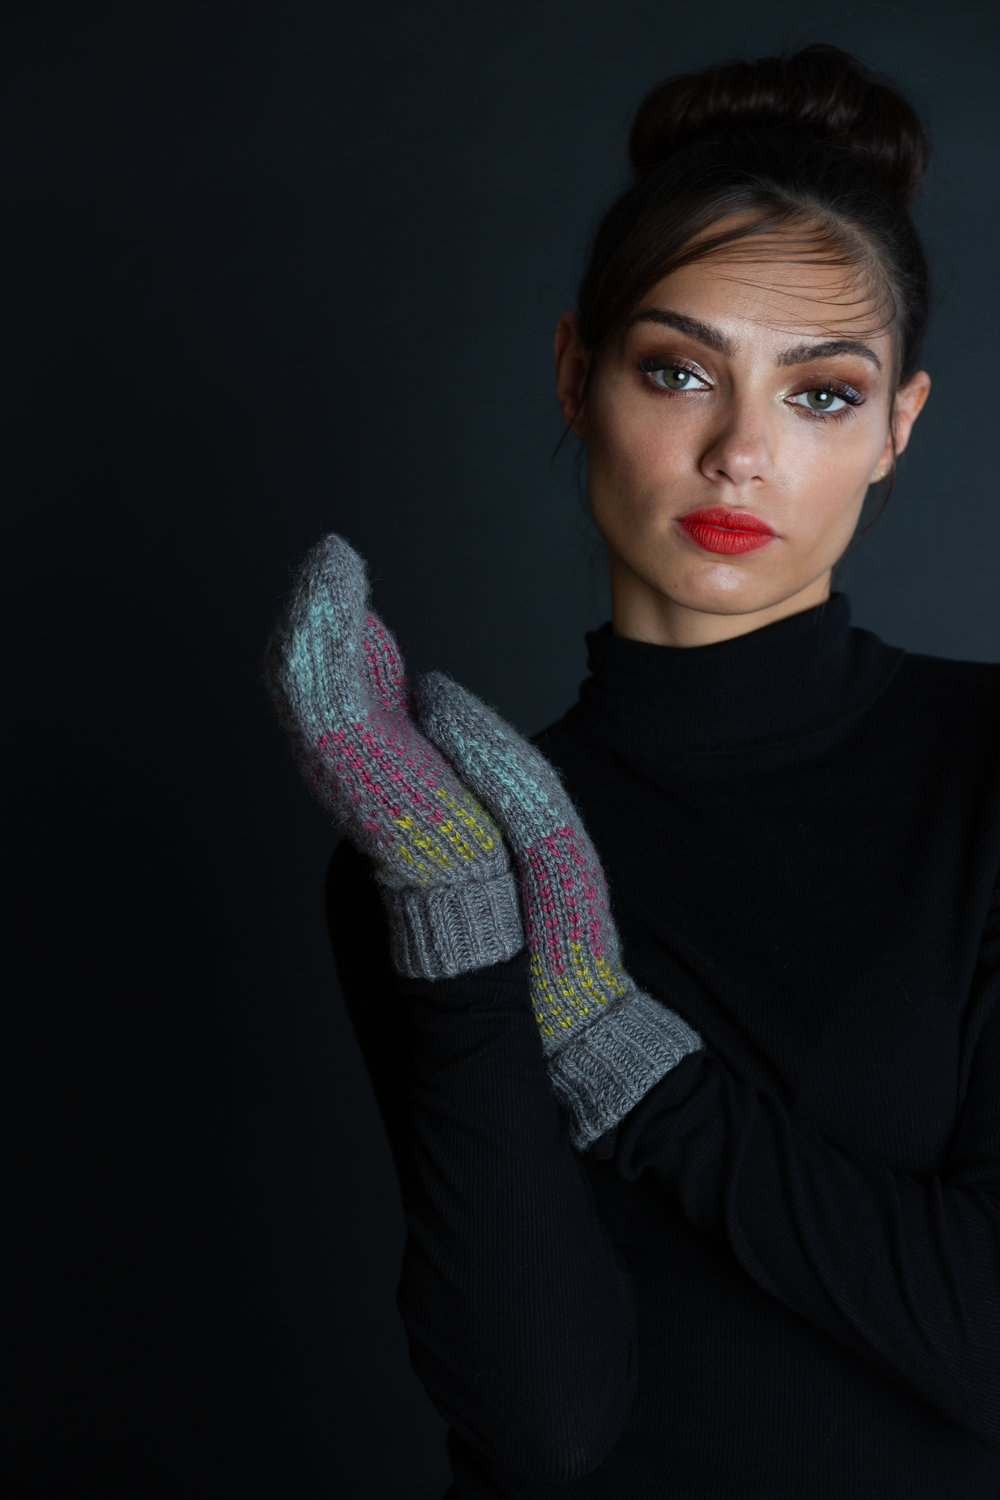 Spinel Mittens by Becky Sorensen for JEWELS by Making Stories